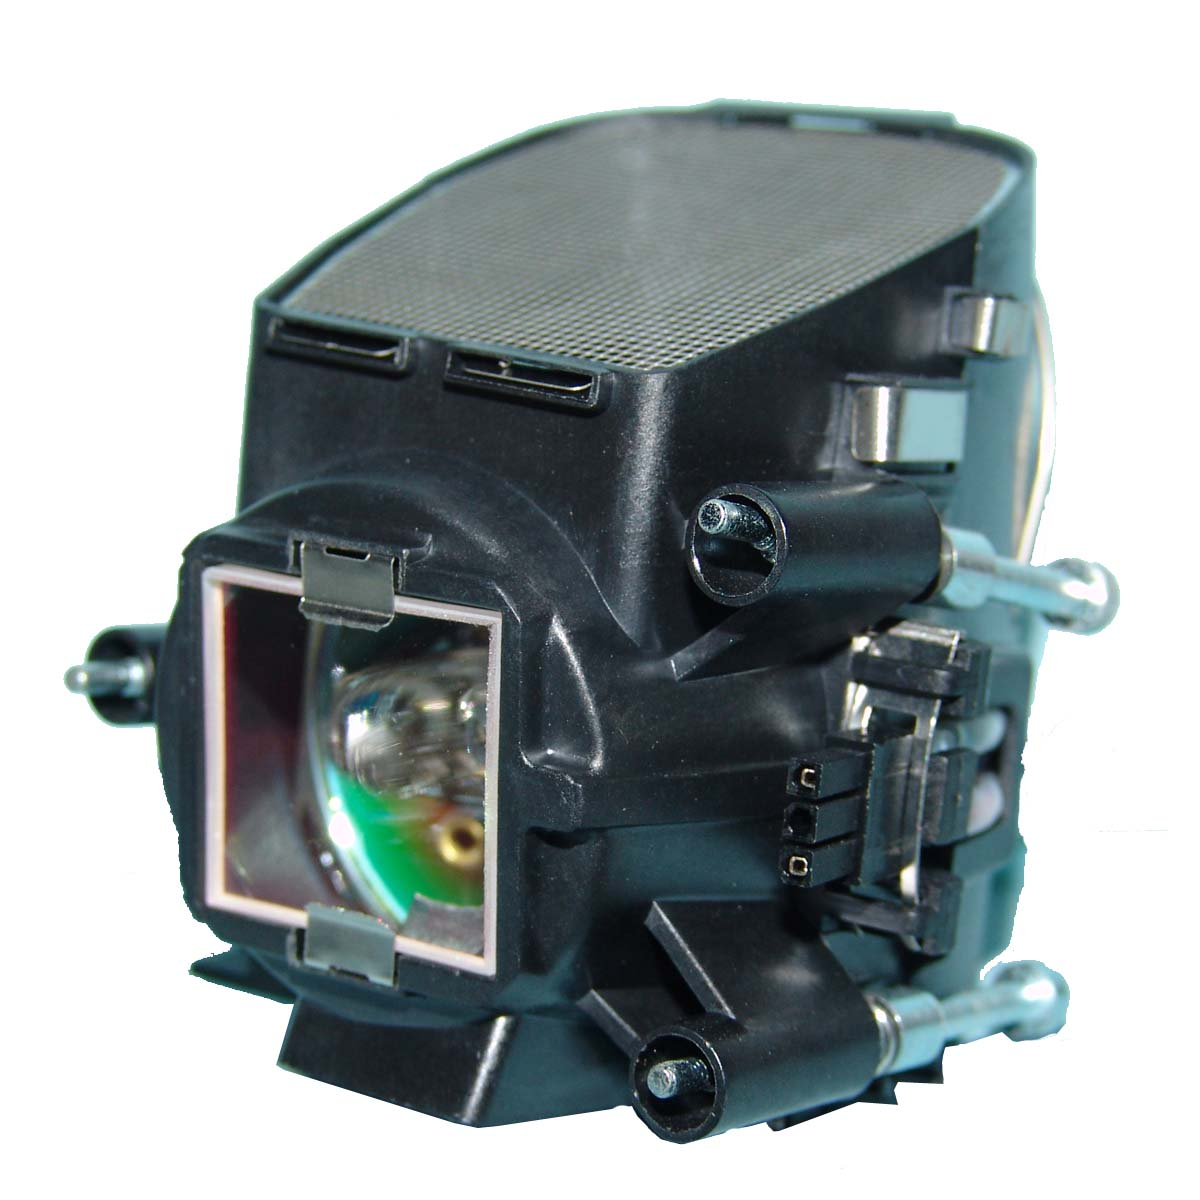 Lutema Economy Bulb for ProjectionDesign evo2sx+ Projector (Lamp with Housing) - image 5 of 5